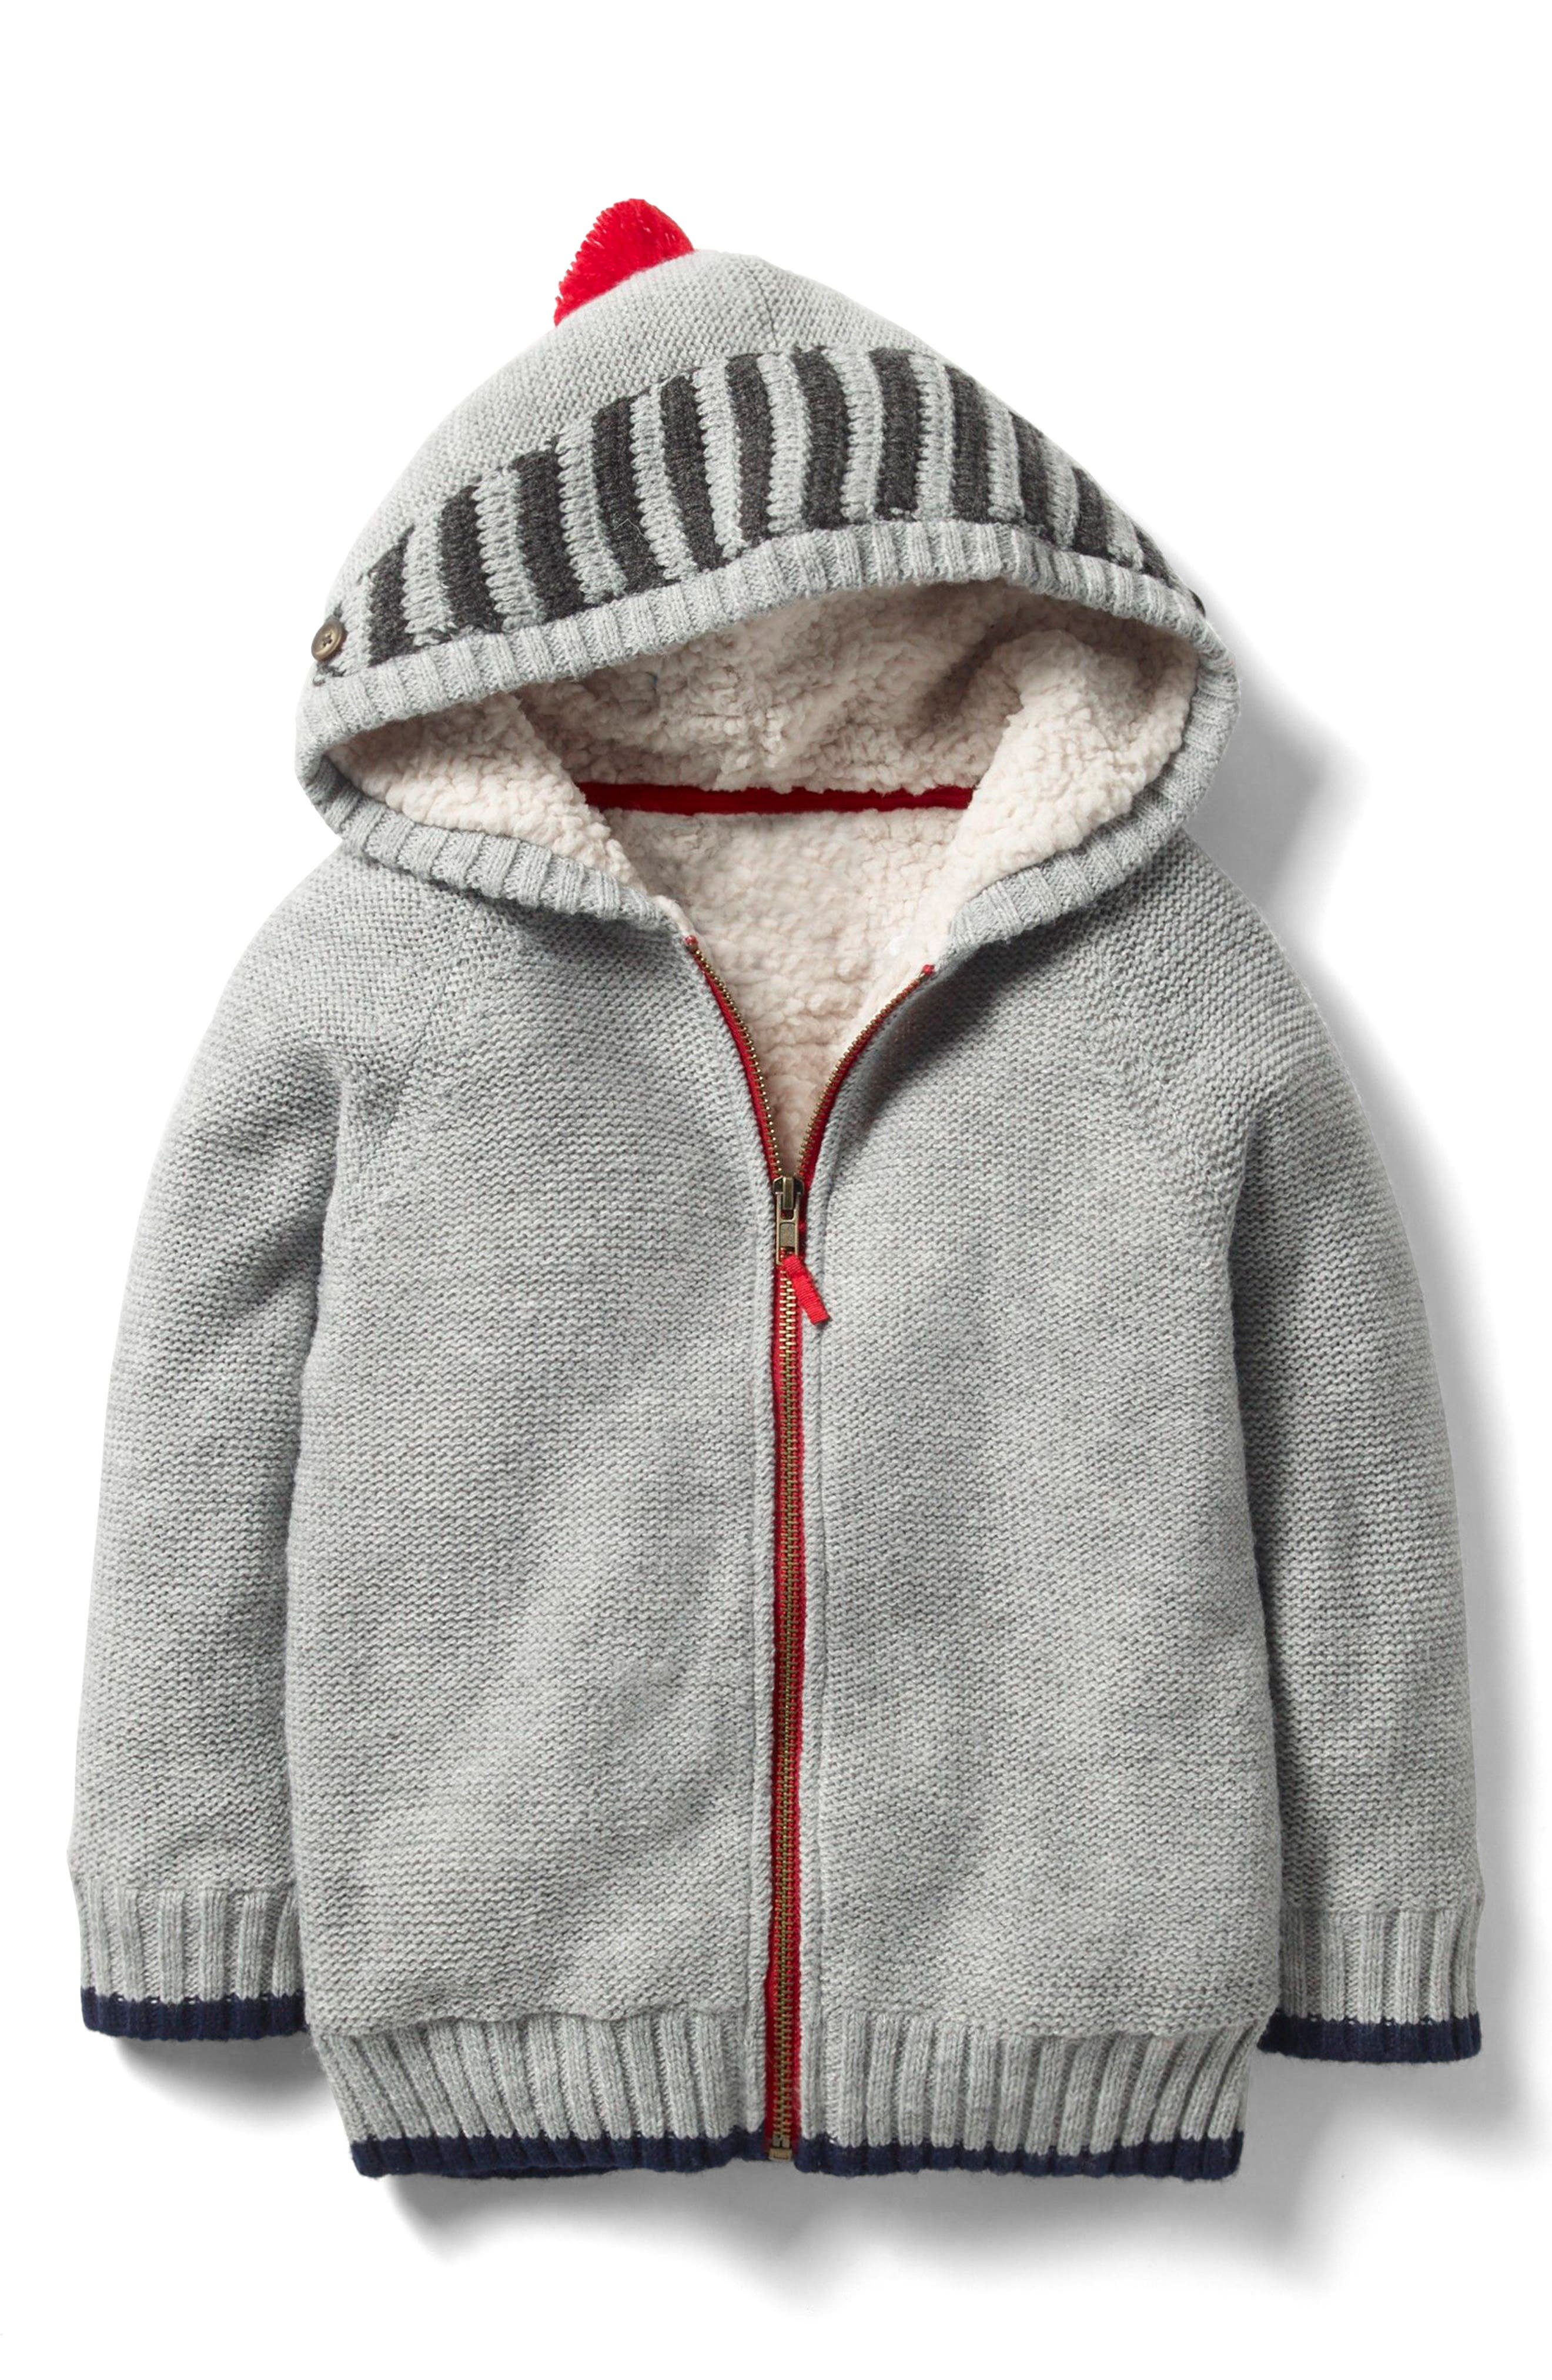 Shaggy Fleece Lined Hoodie,                             Main thumbnail 1, color,                             Grey Marl Knight